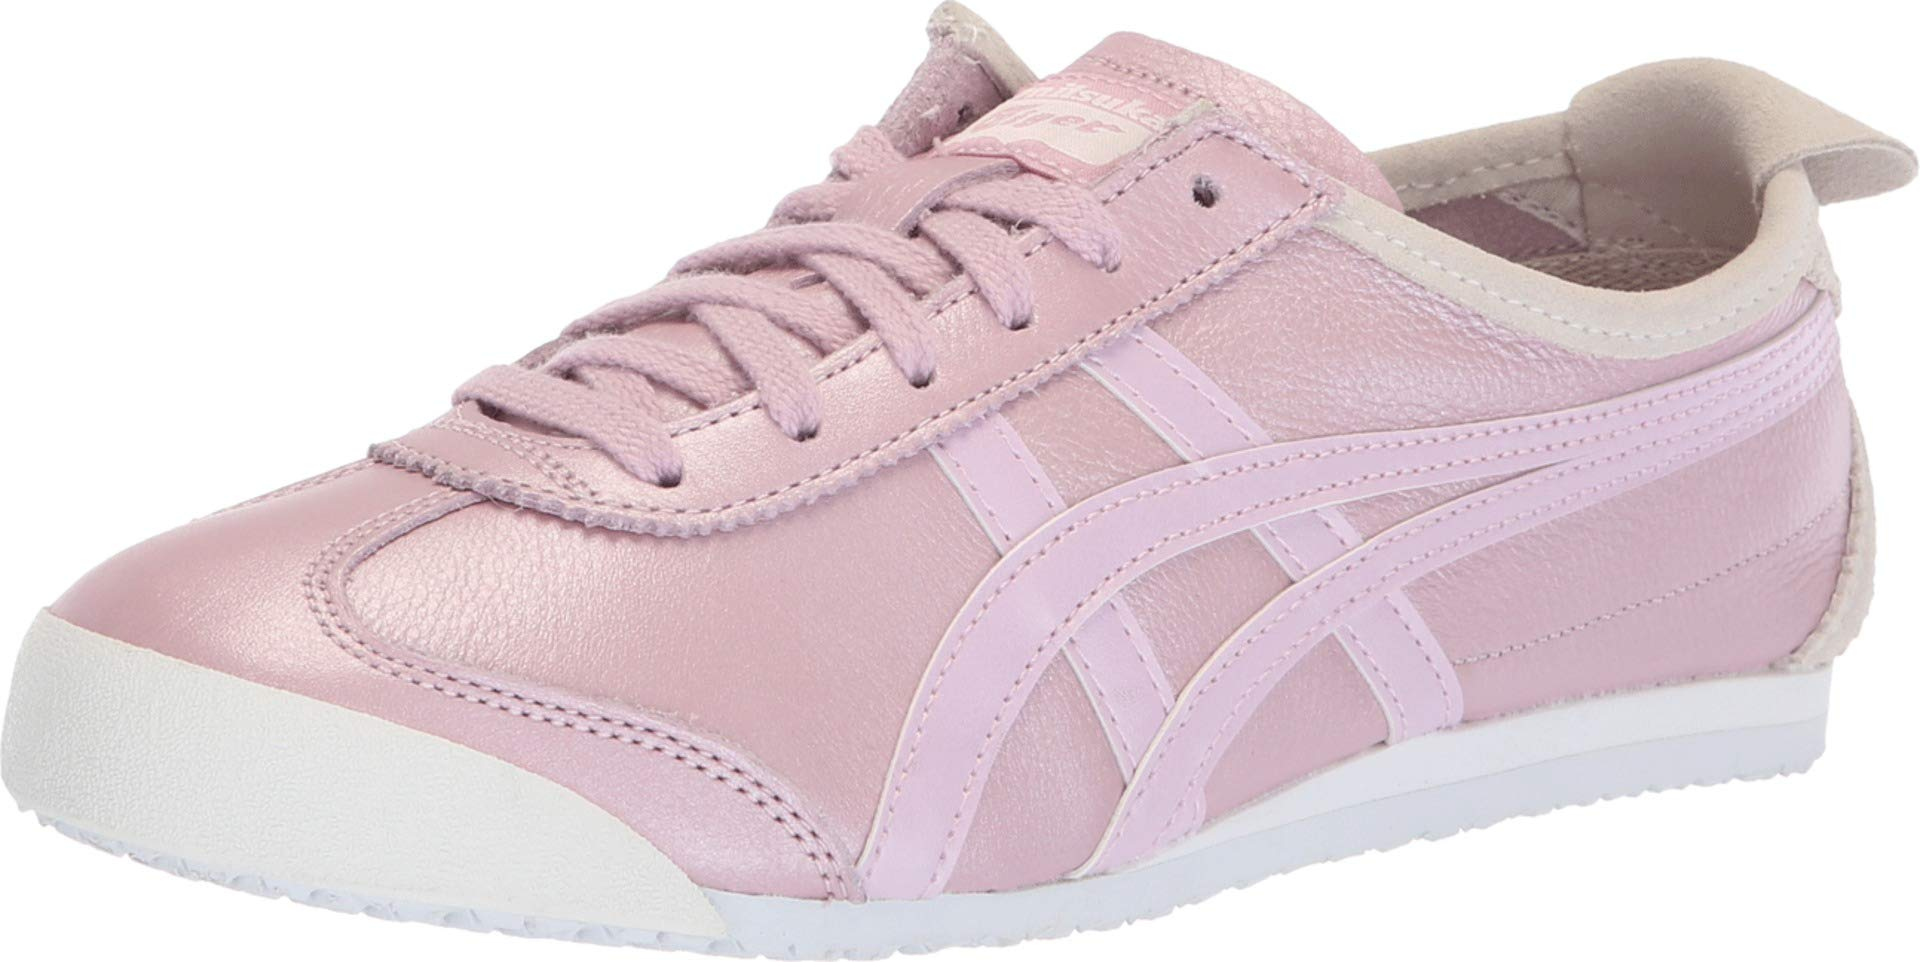 separation shoes 5992d 96c43 Onitsuka Tiger by Asics Women's Mexico 66¿ Rose Gold/Rose Gold 10.5 B US